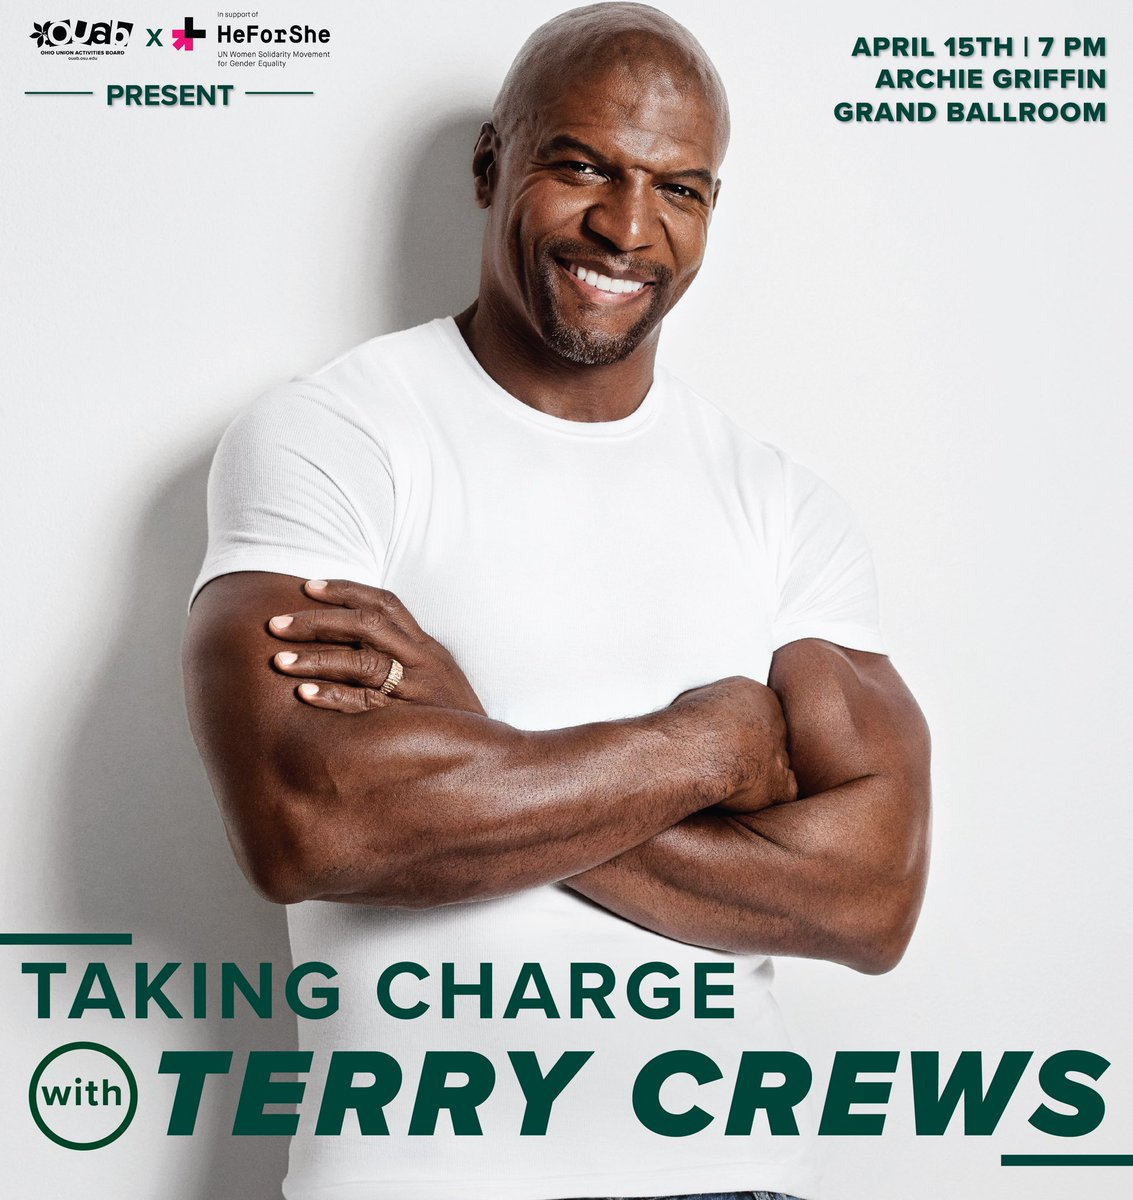 JUST RELEASED: OUAB presents Taking Charge with Terry Crews, a collaboration with @HeForSheOSU on April 15th! Join us for a serious talk about sexual assault and toxic masculinity with @terrycrews Tickets are available on March 20th at 5:00 PM and will be 1 per BuckID. <br>http://pic.twitter.com/eKTvDpVvUJ